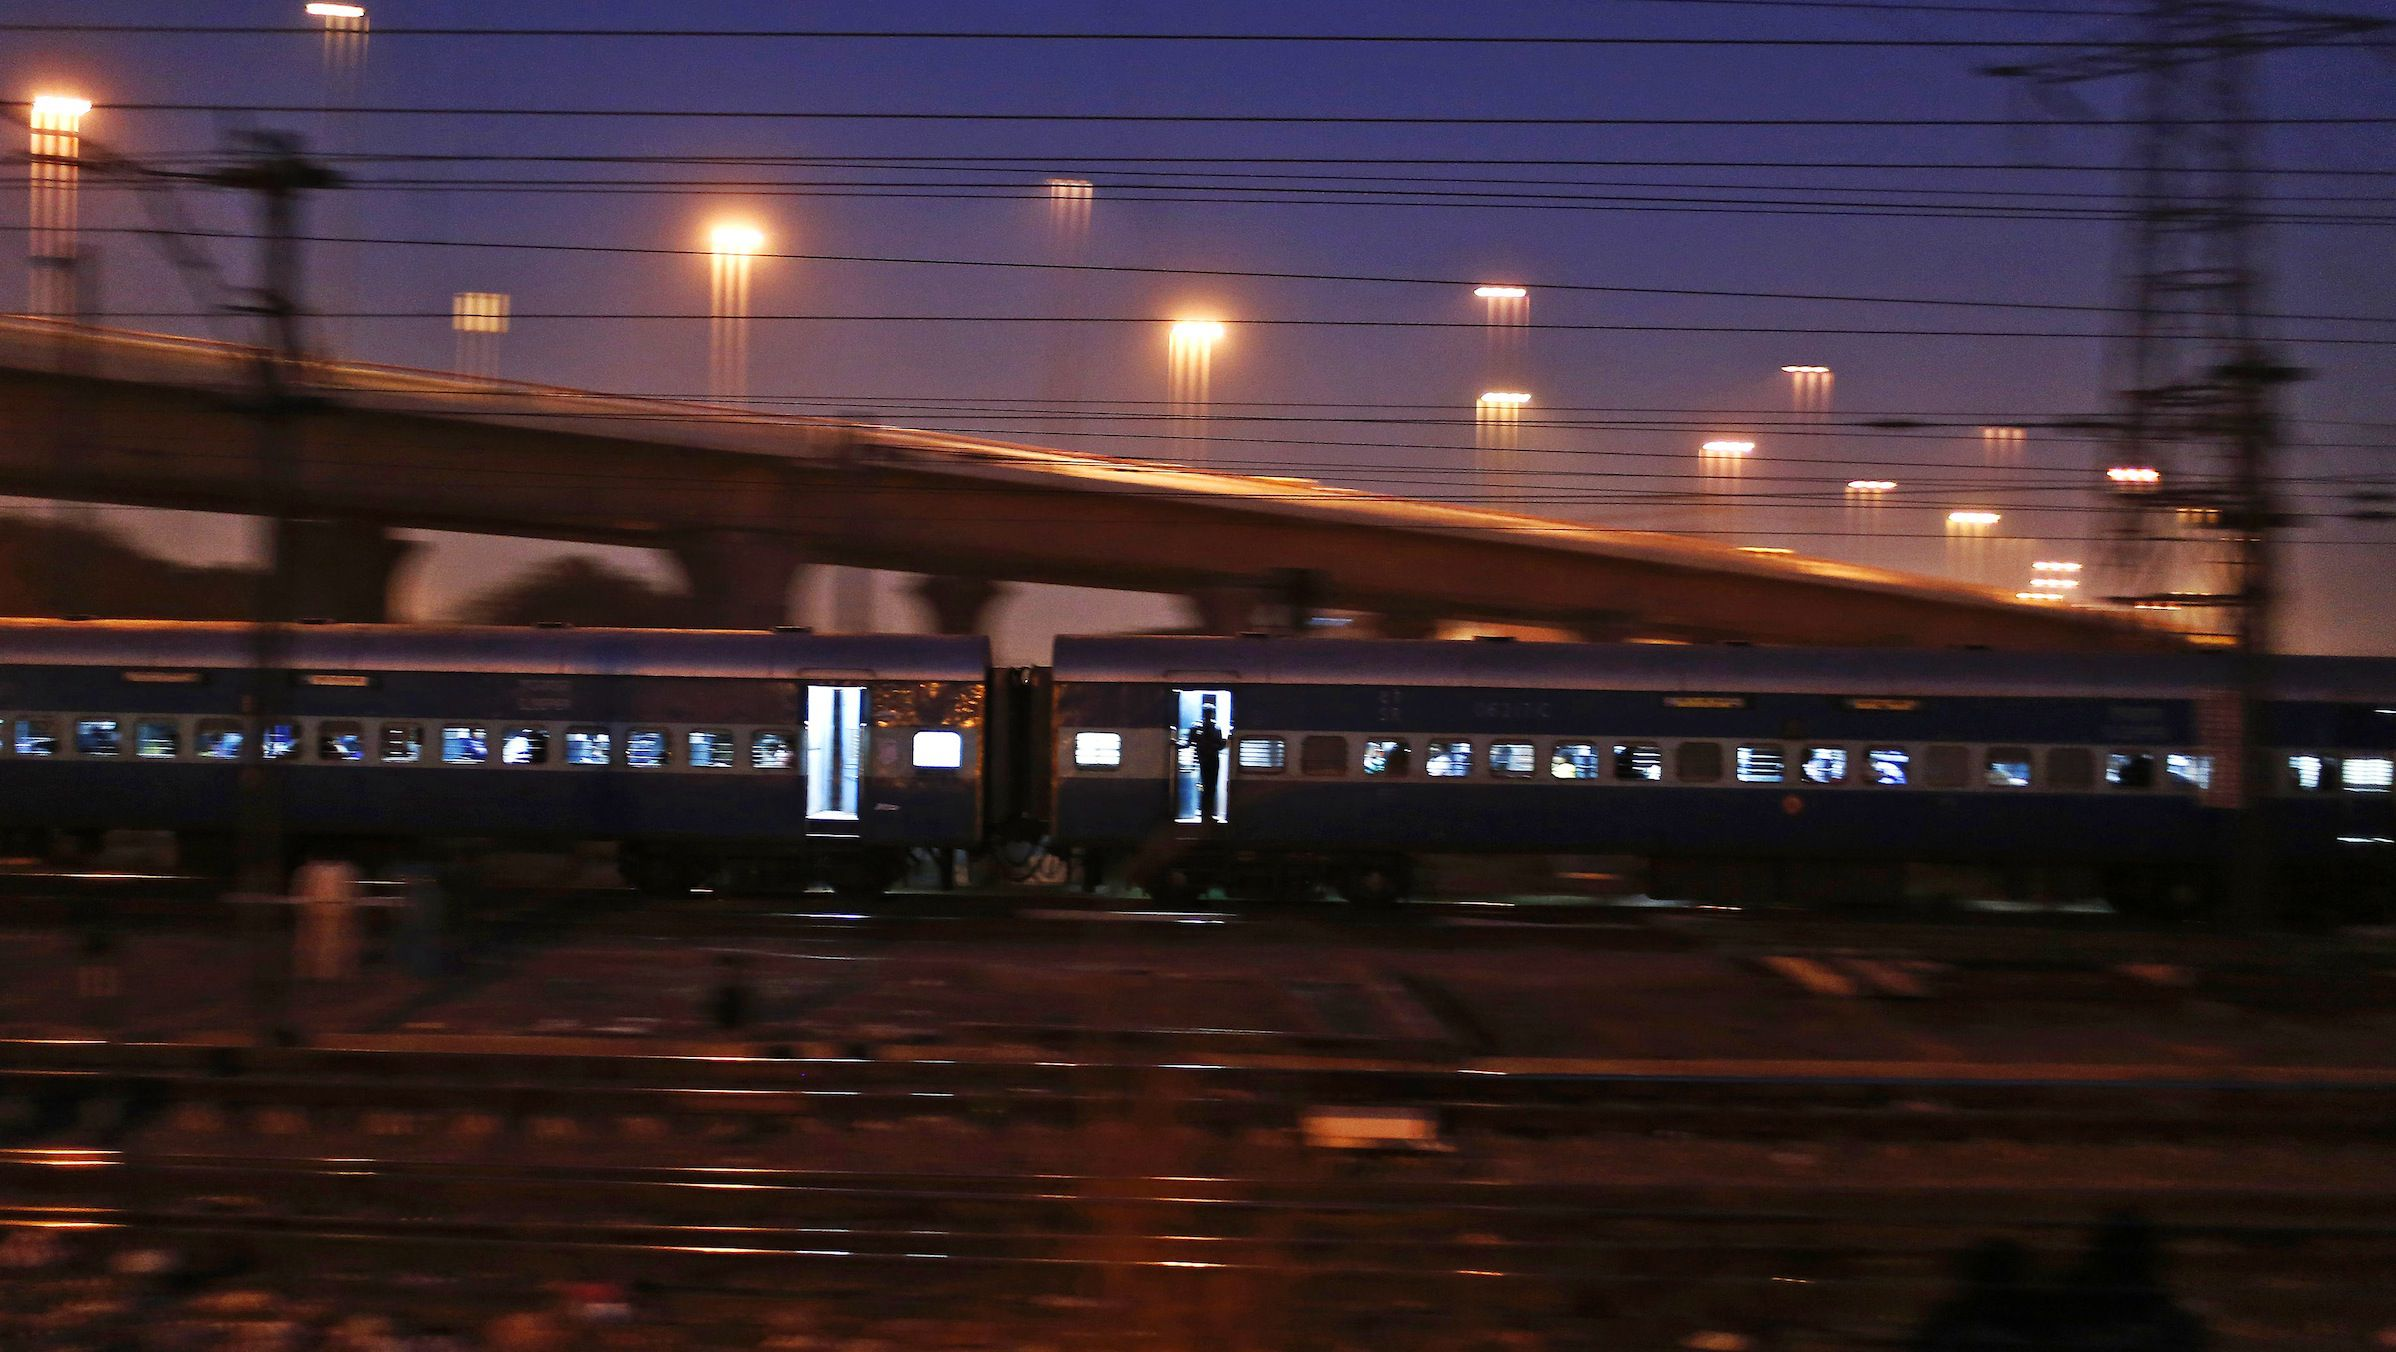 A commuter stands on the doorsteps of a moving train in New Delhi March 6, 2014. REUTERS/Adnan Abidi (INDIA - Tags: SOCIETY TRANSPORT) - RTR3G4LG